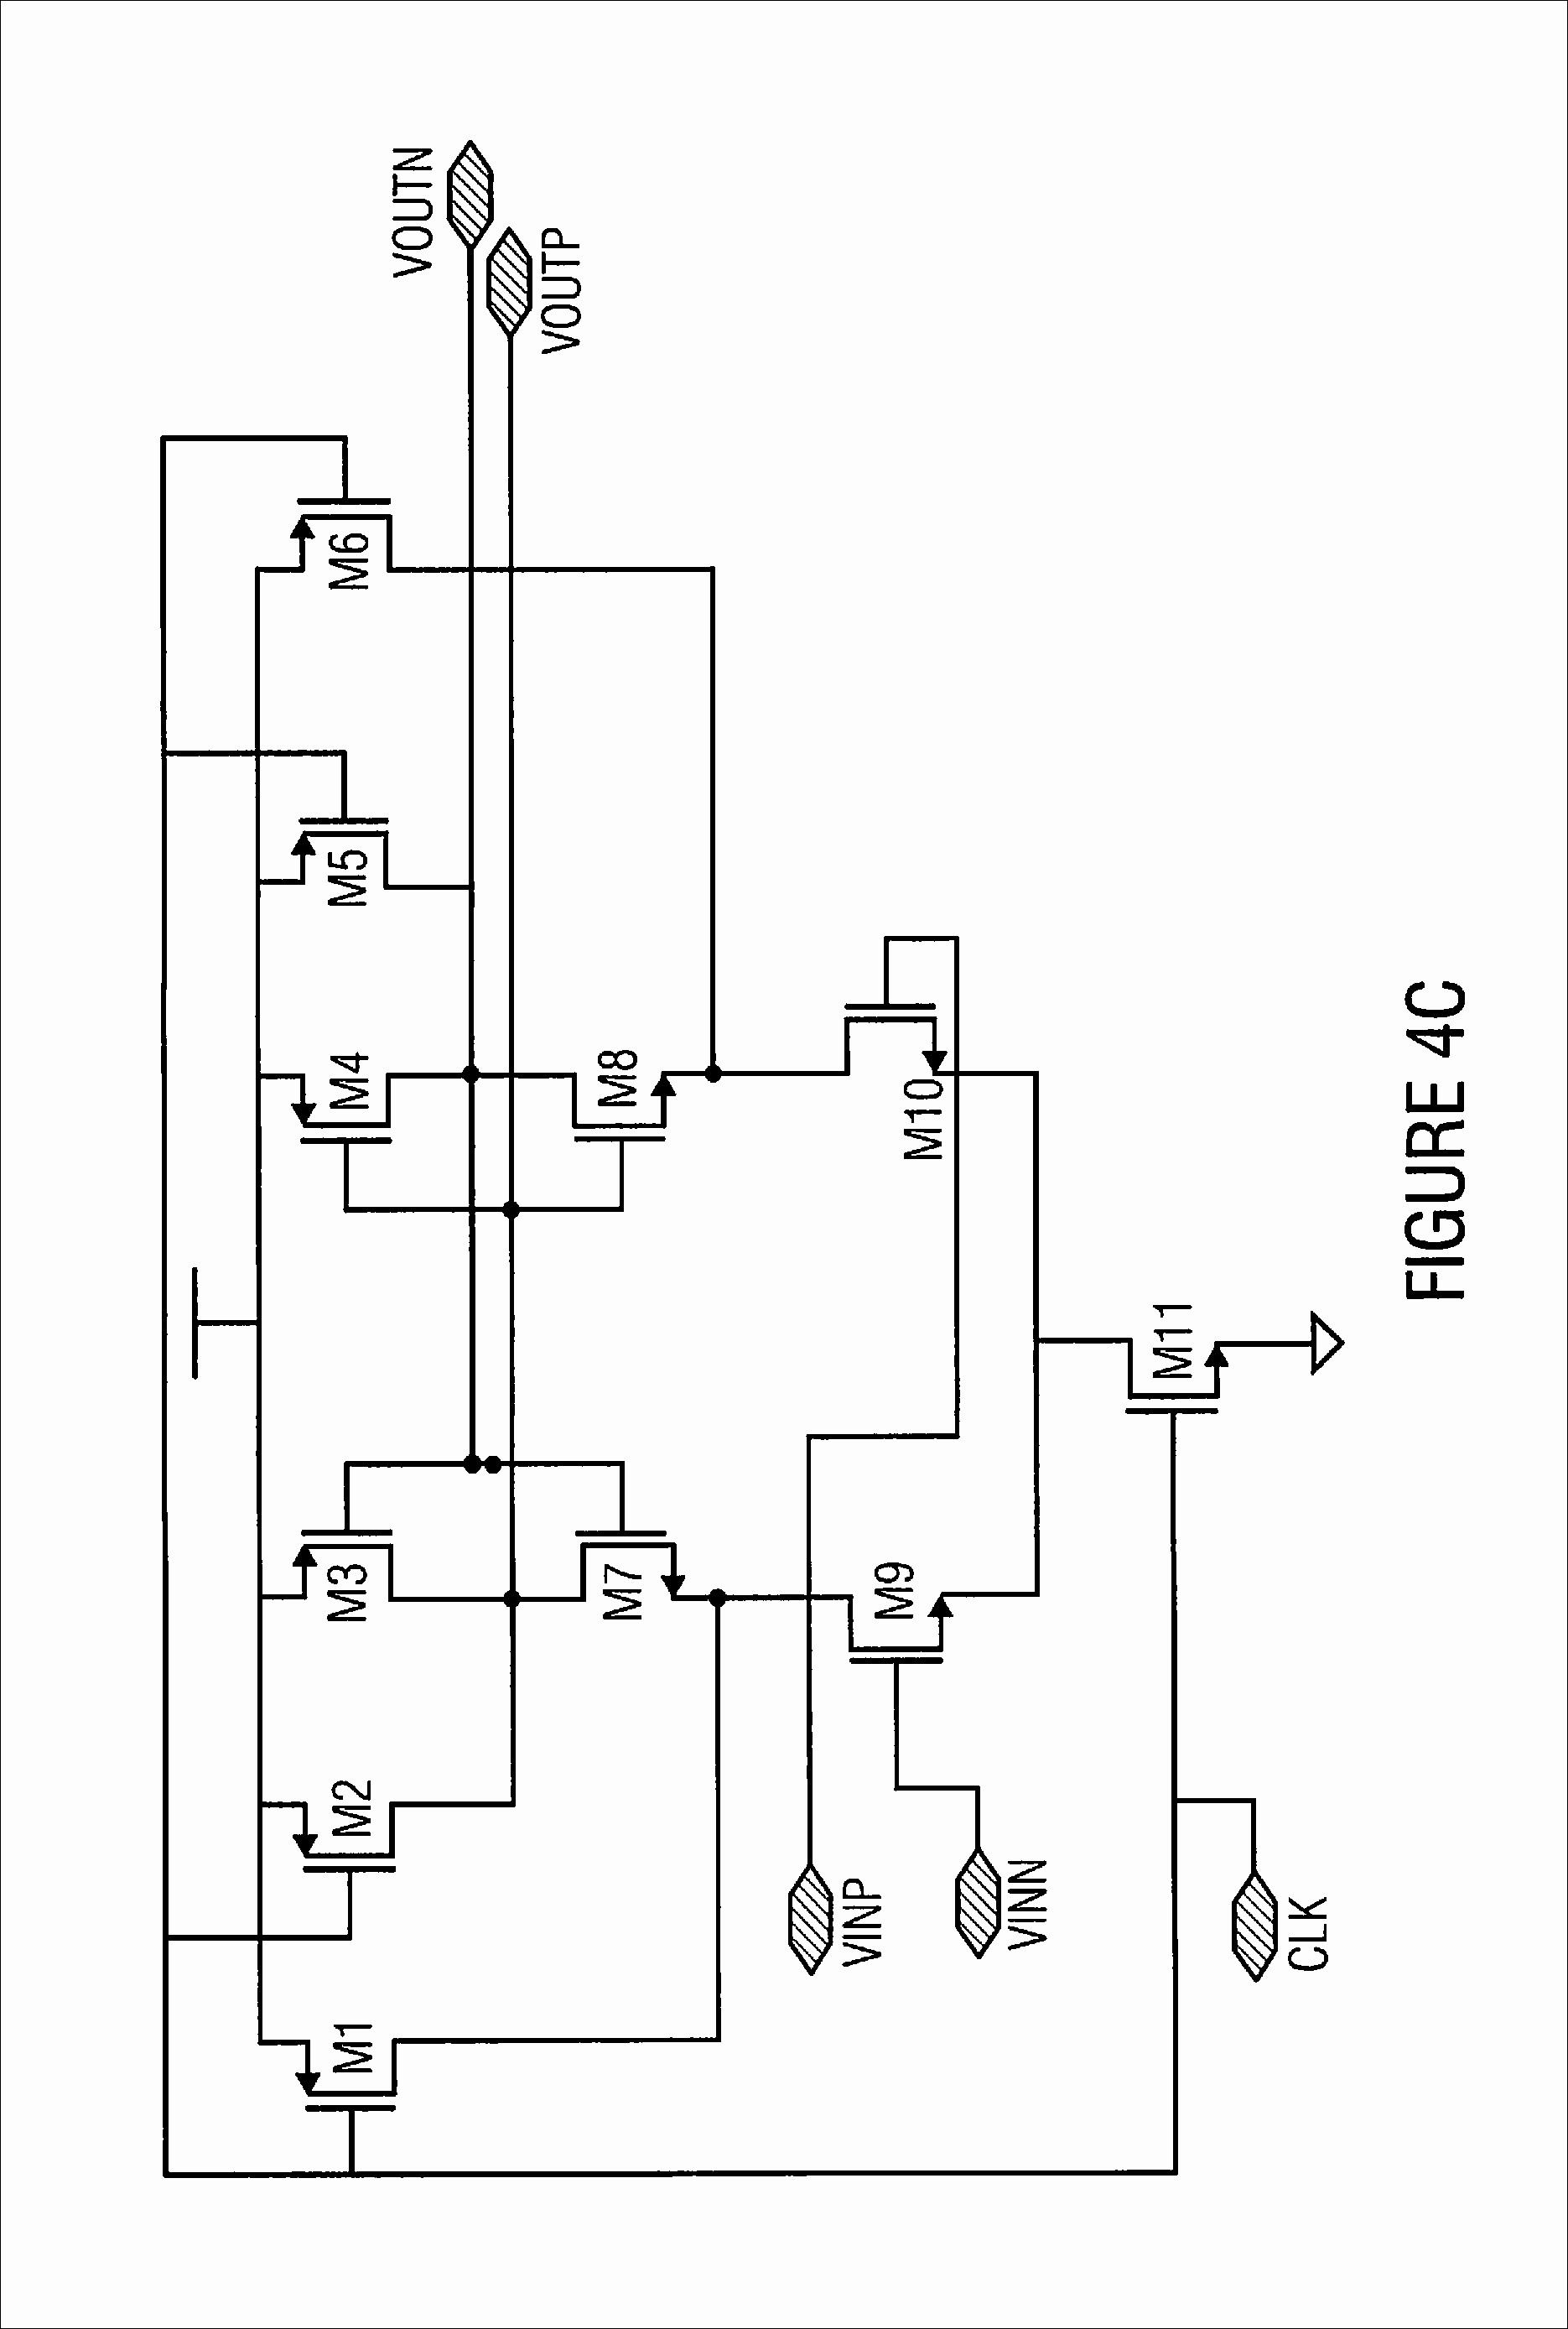 Ford 8n 12 Volt Conversion Wiring Diagram Awesome 6 Volt to 12 Volt  Conversion Wiring Diagram